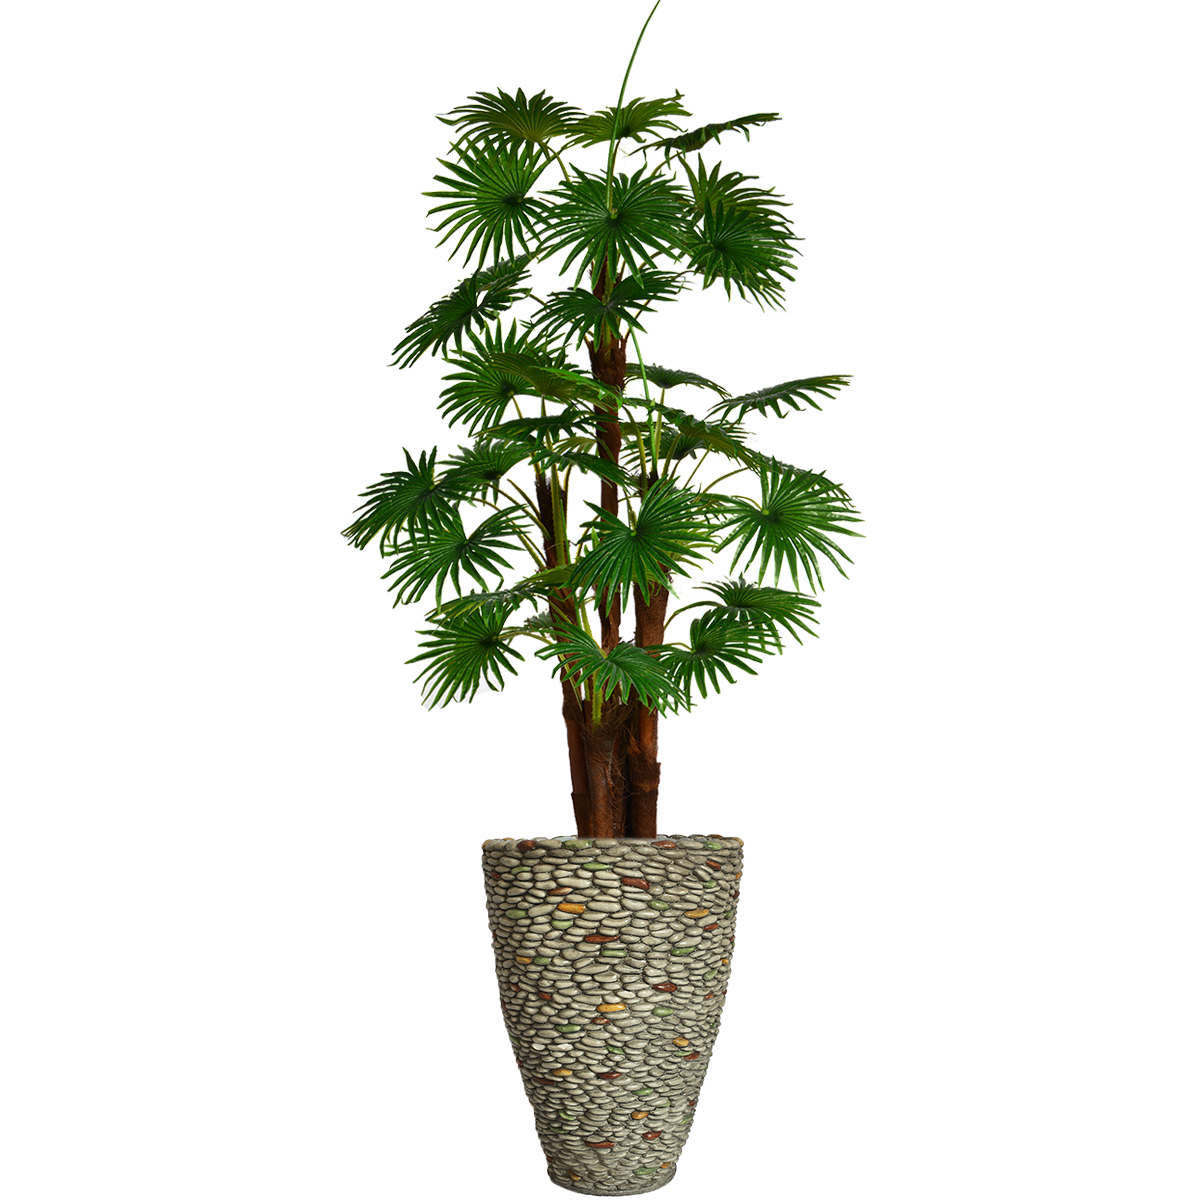 """79.5"""" Tall Fan Palm Tree Artificial Indoor/ Outdoor Décor Faux Burlap Kit and Fiberstone Planter By Minx NY"""